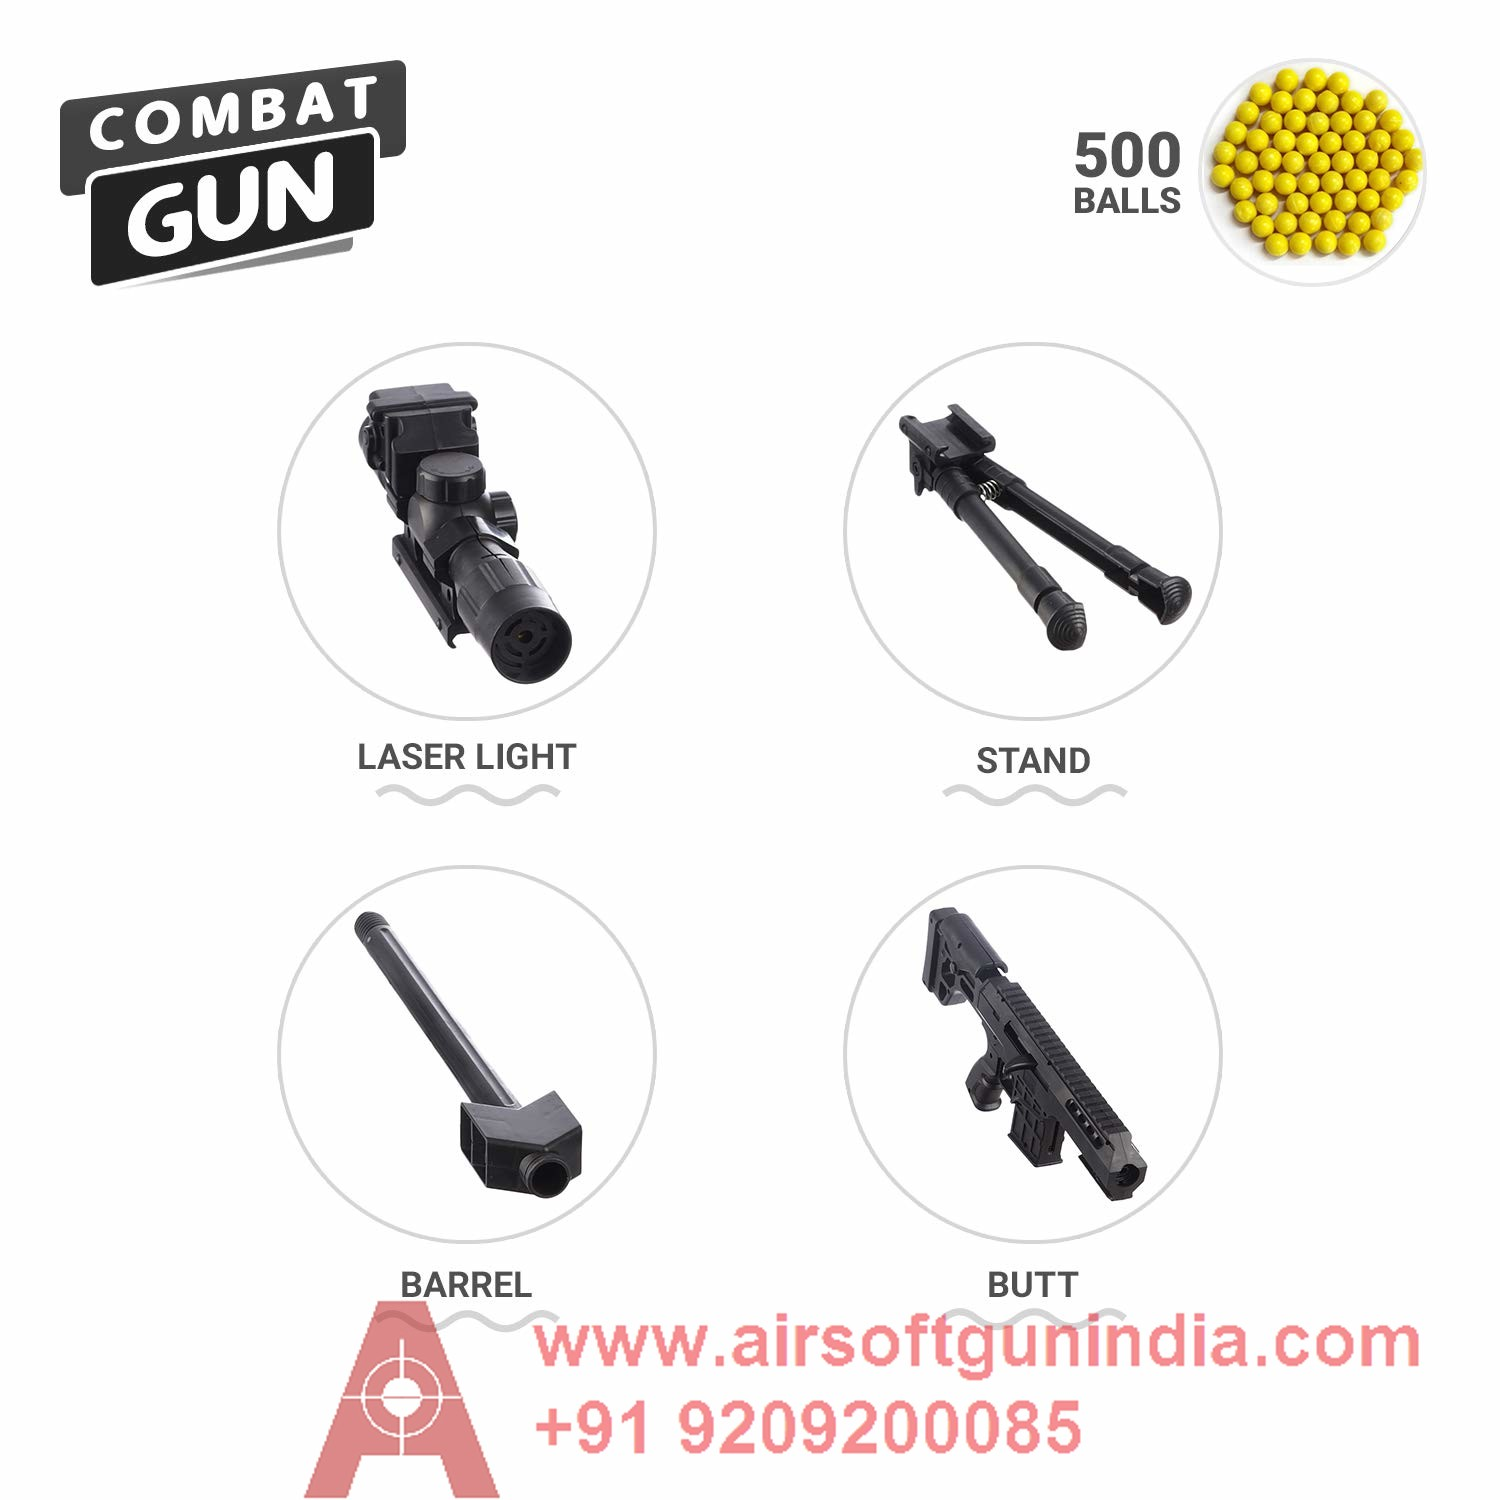 Toy Sniper Rifle By Airsoft Gun India